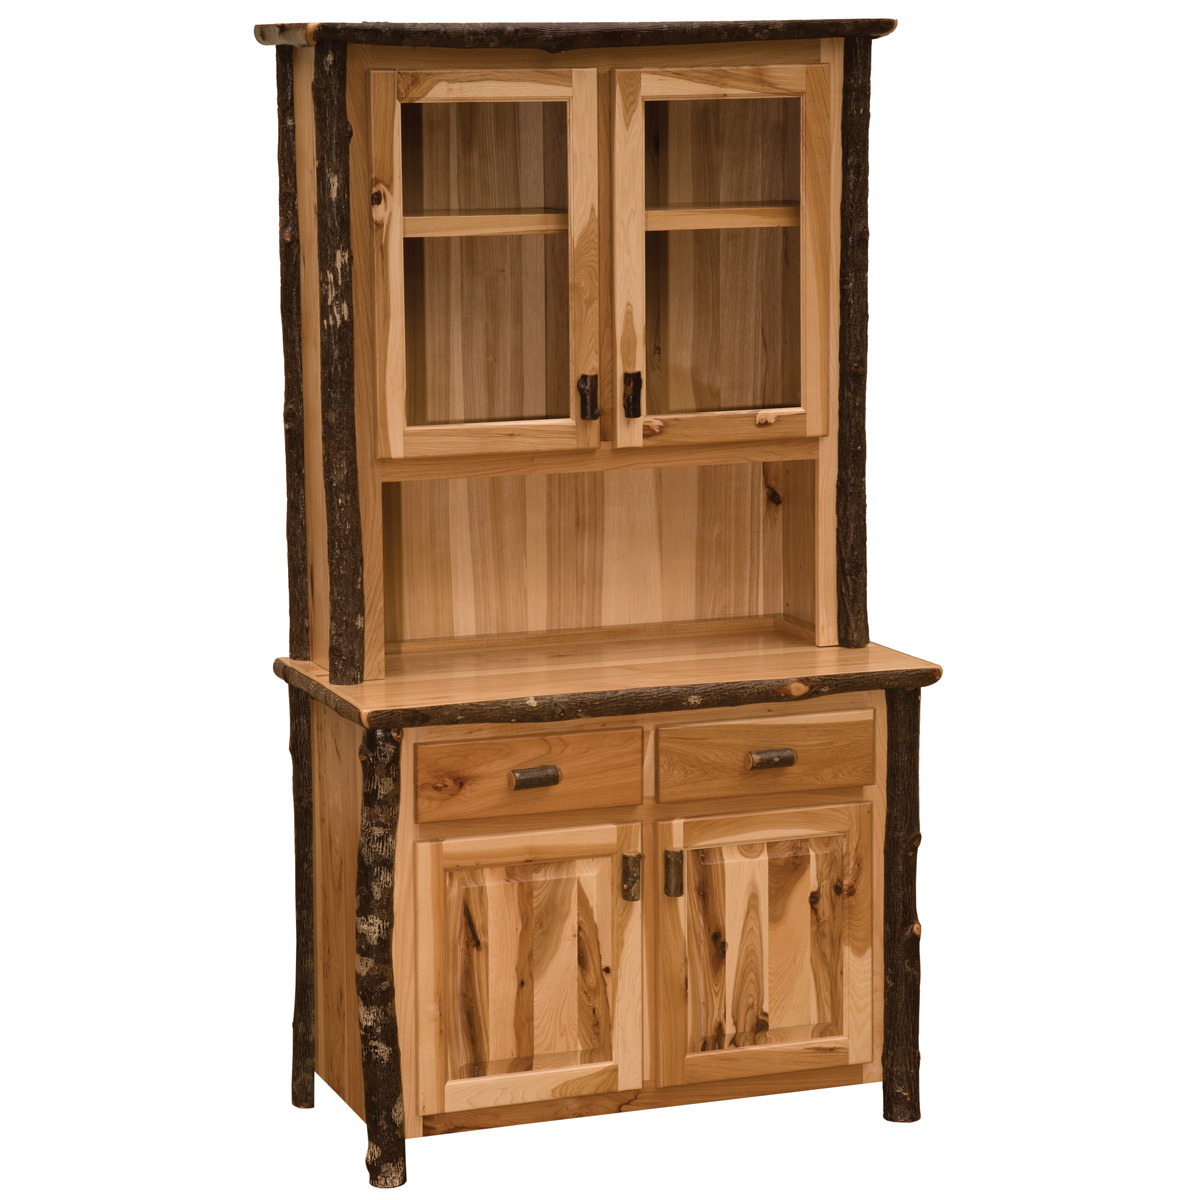 Black Forest Decor Hickory buffet & hutch - 48 inch